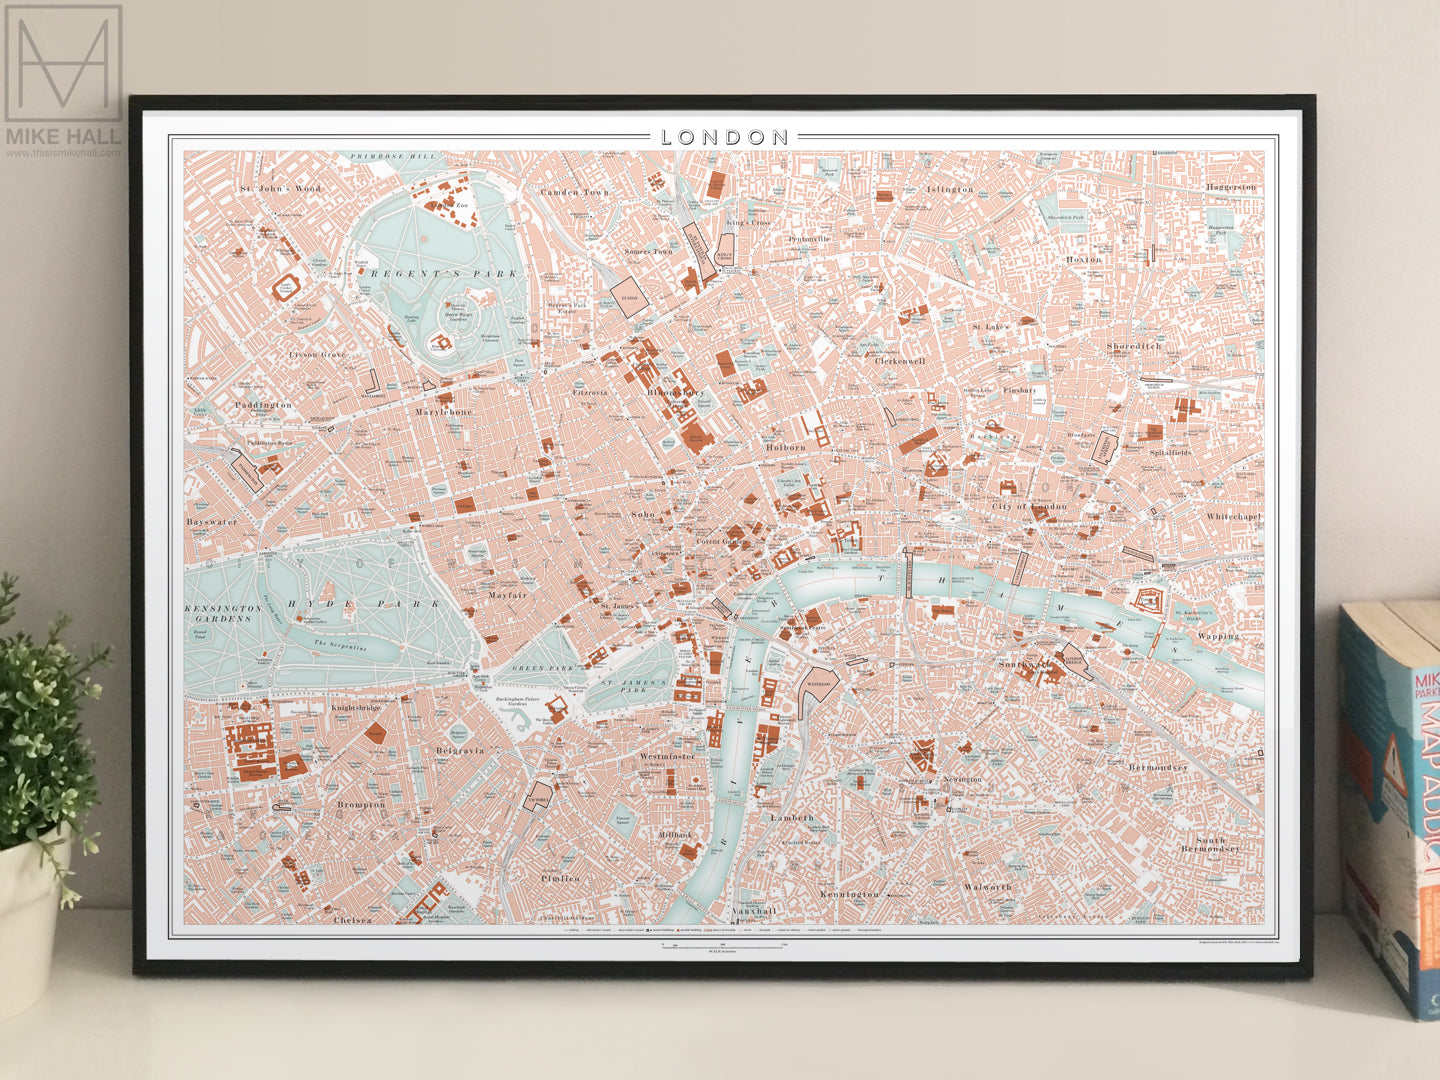 London, UK city map giclee print (70 x 50 cm)